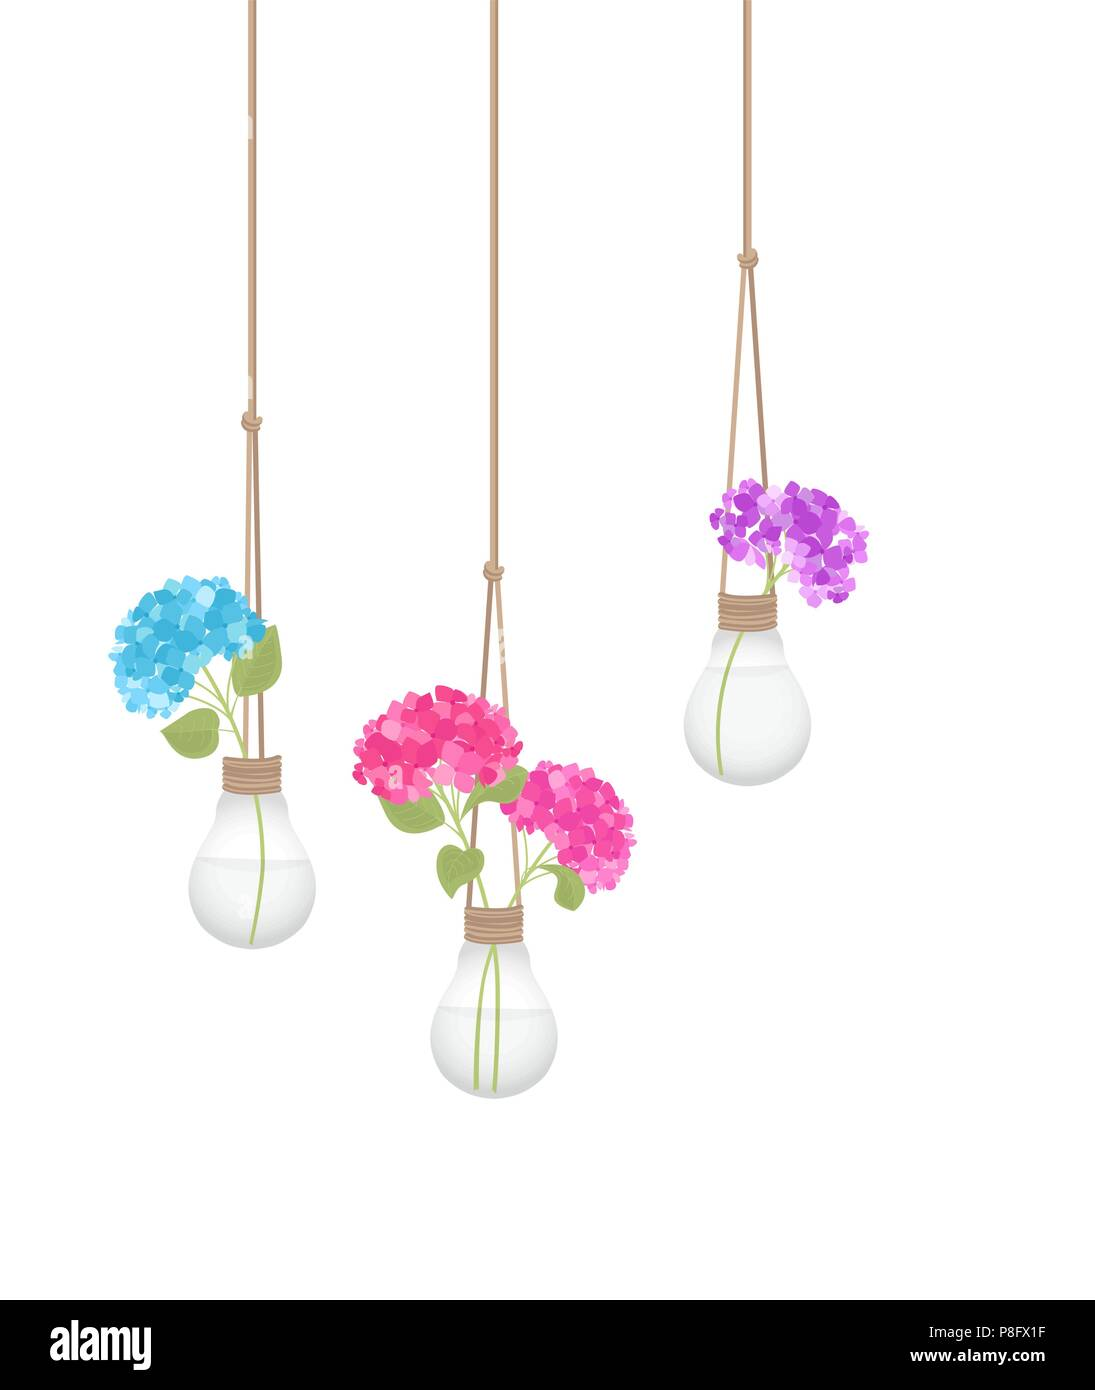 Vector Illustration Of A Flower In A Light Bulb Home Decor Stock